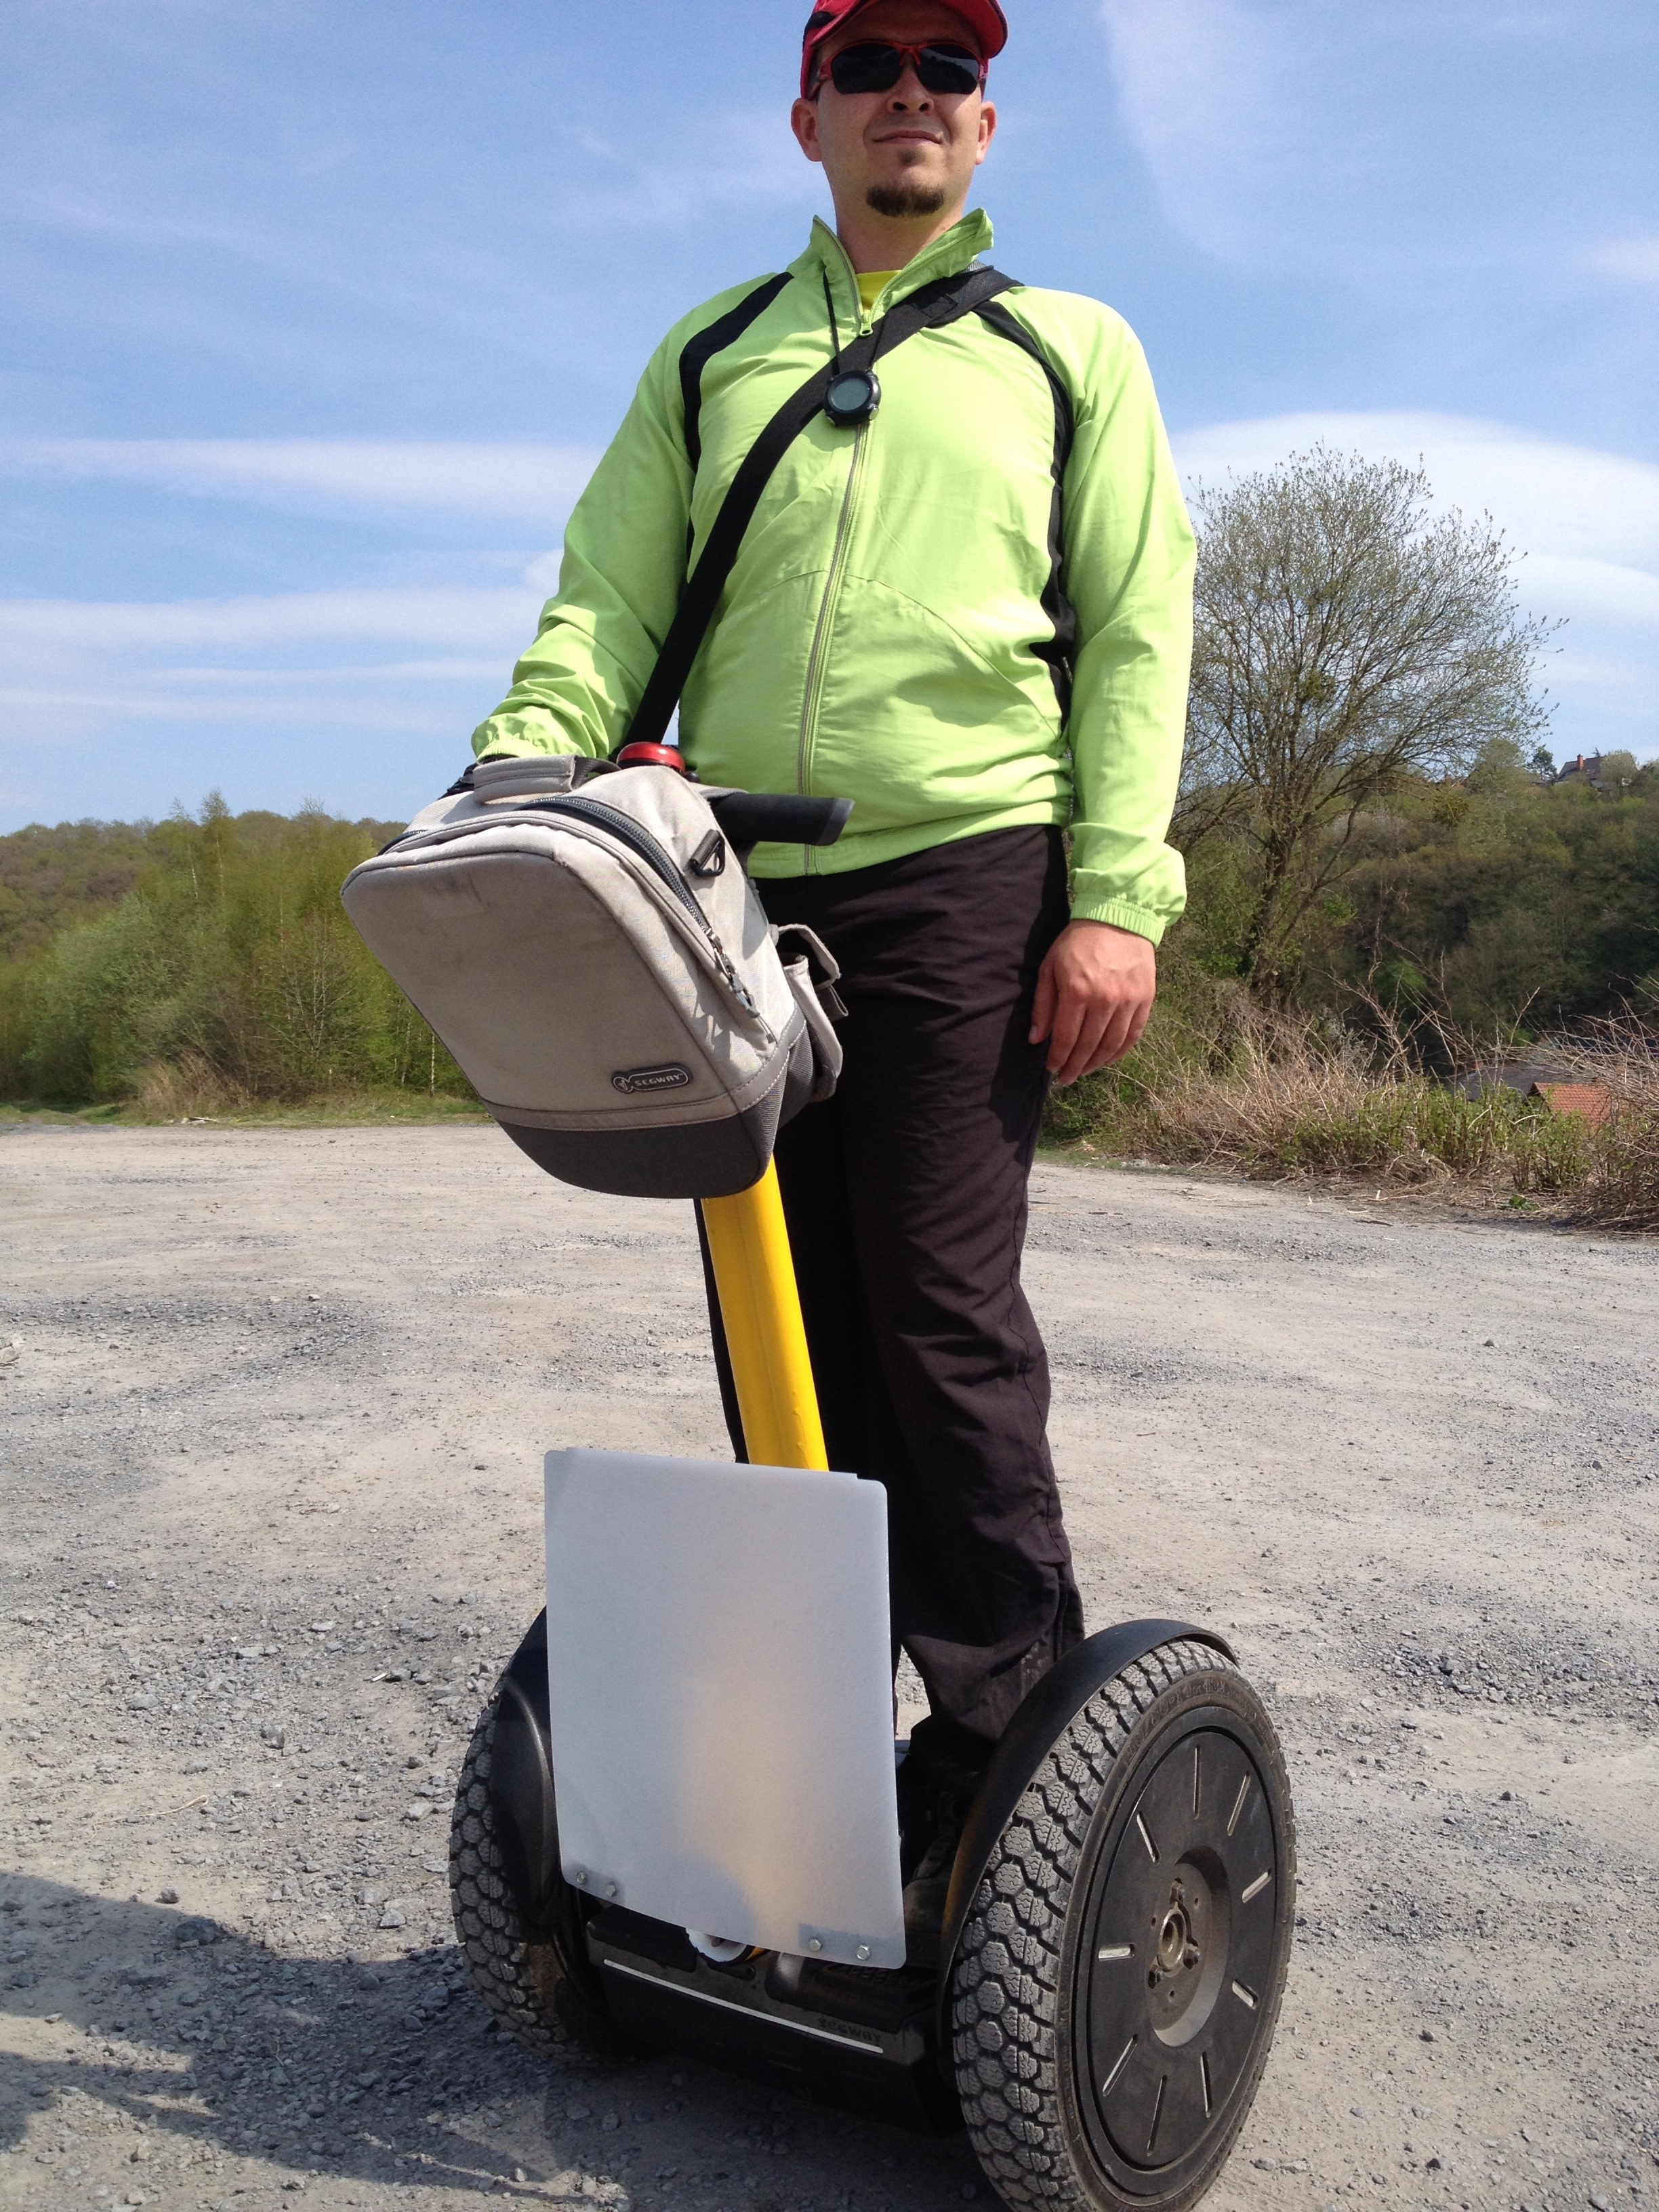 Moniteur/Guide Segway